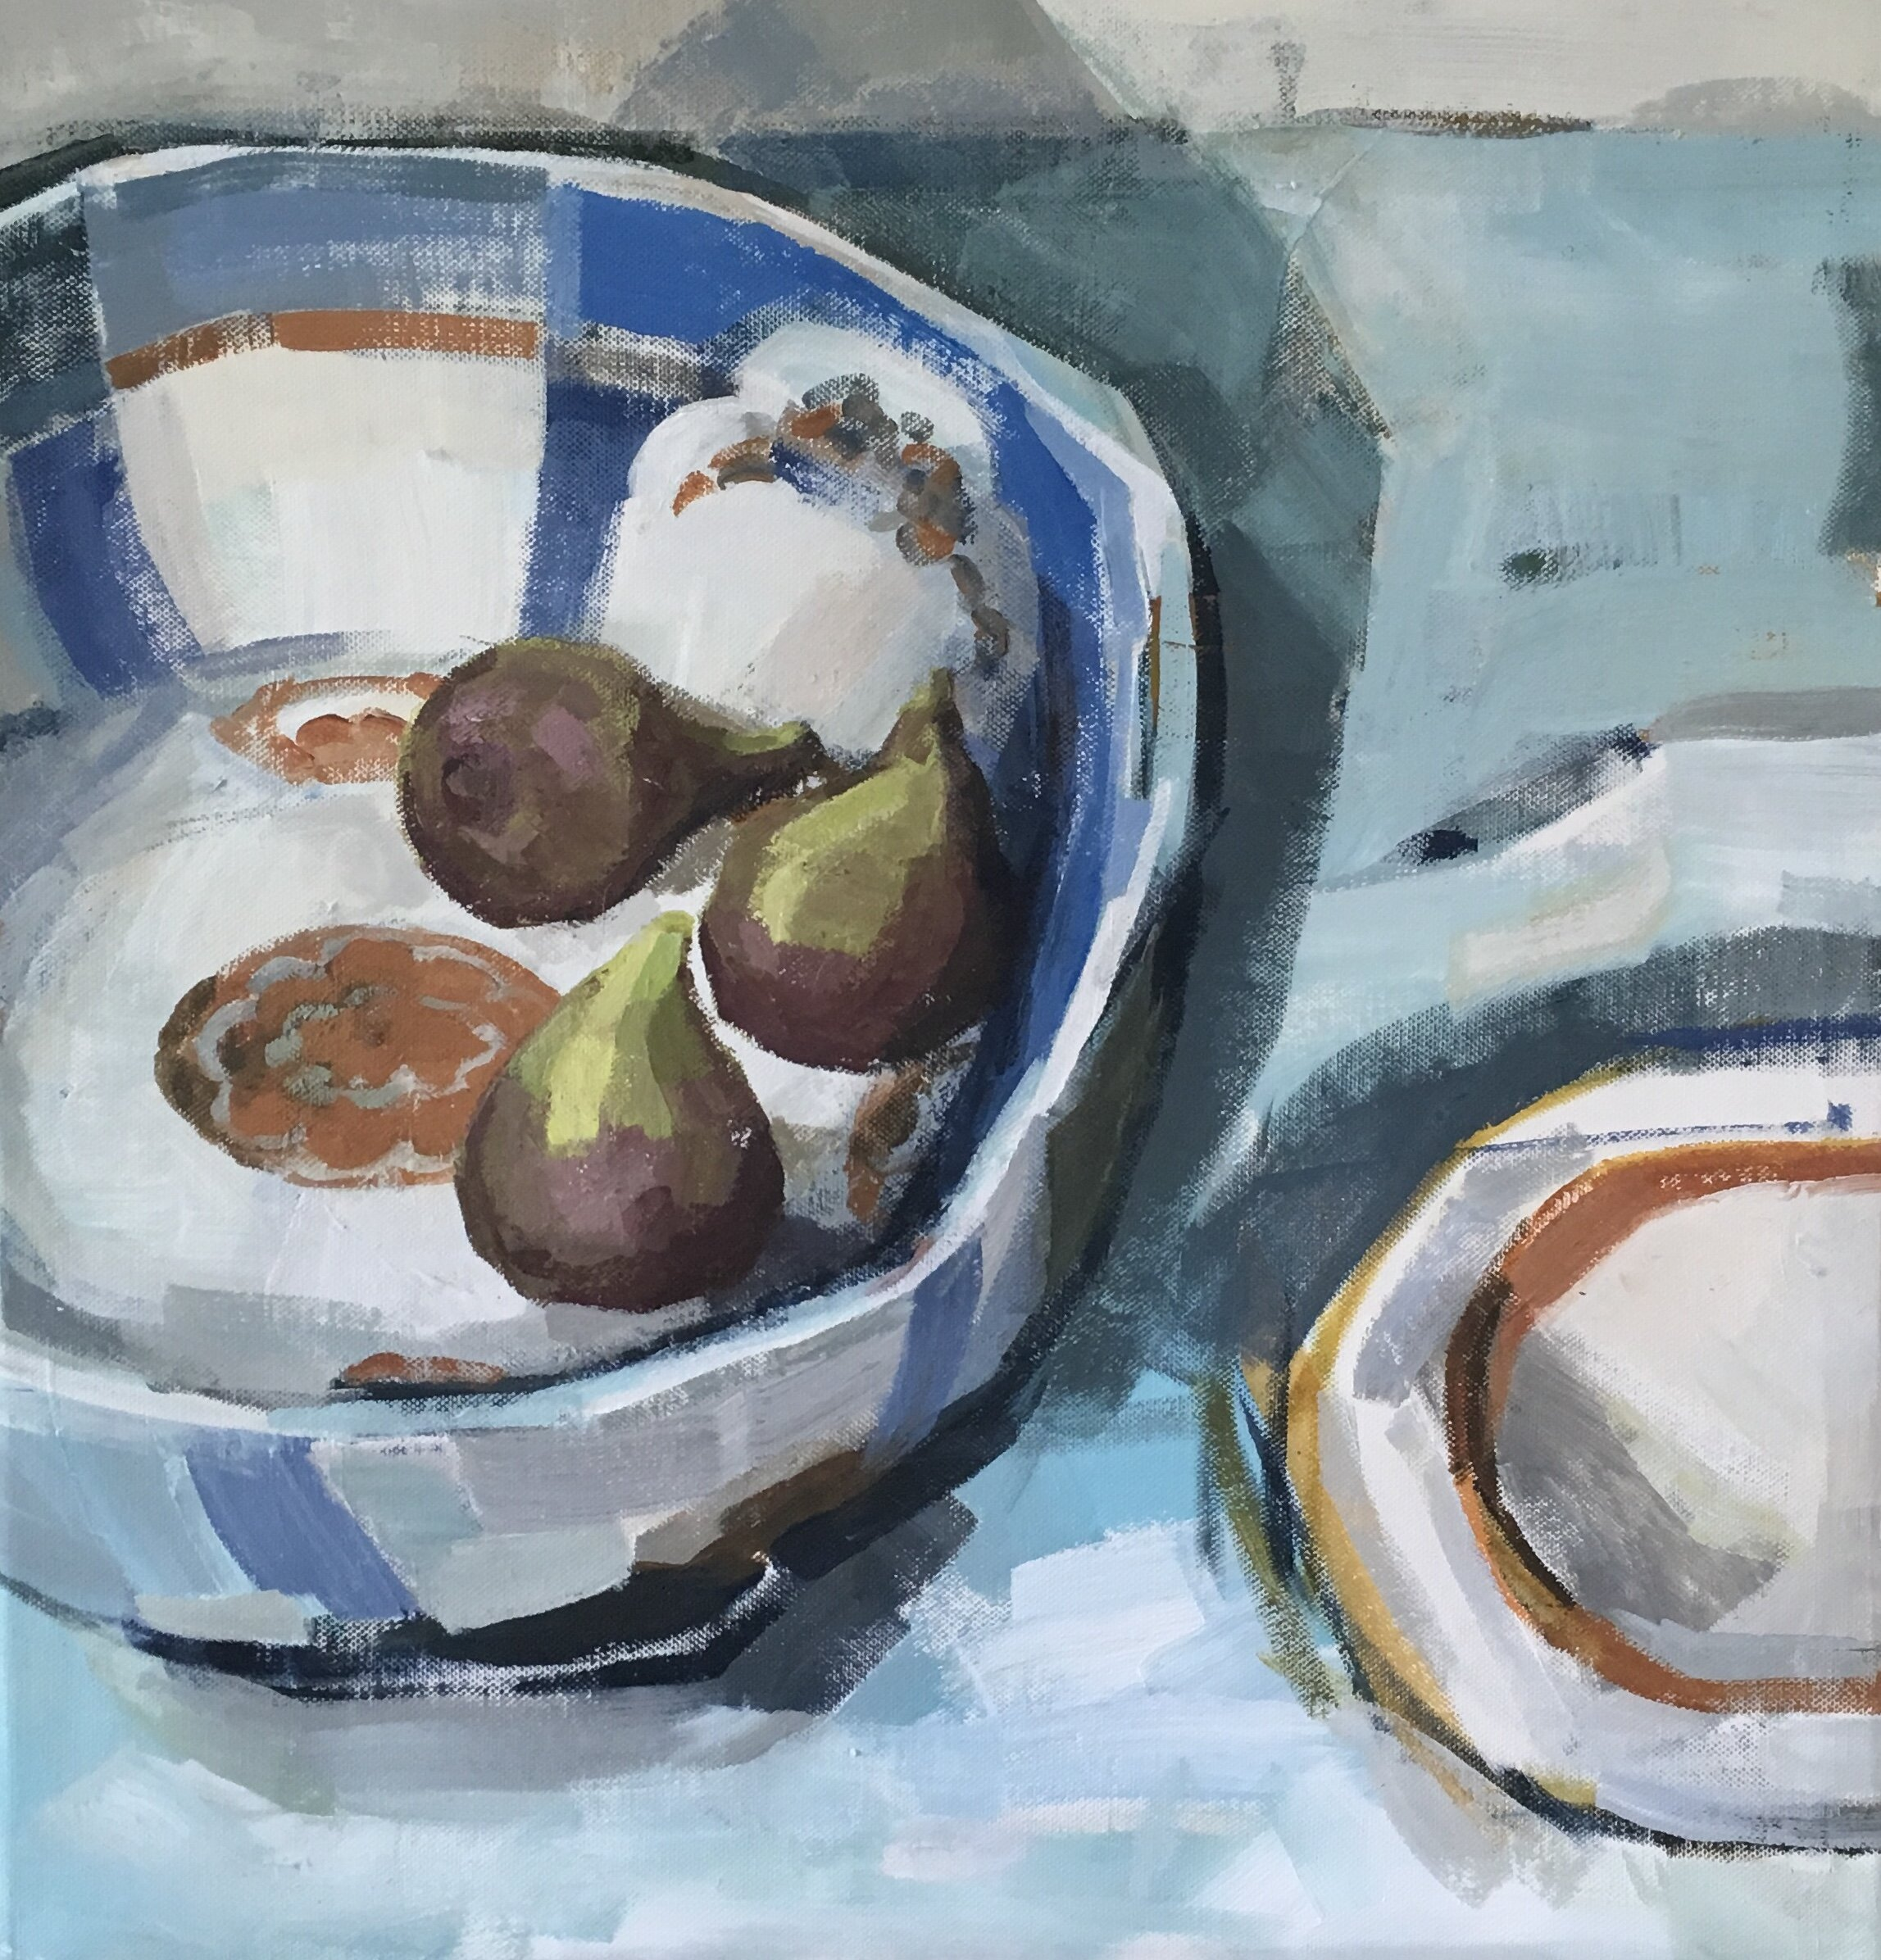 Artist: Kate Strachan  Title: Bowl of Dreams - Still Life with Bowl & Figs  Size: 50 x 50 cm  Medium: Acrylic on canvas  Price: £850